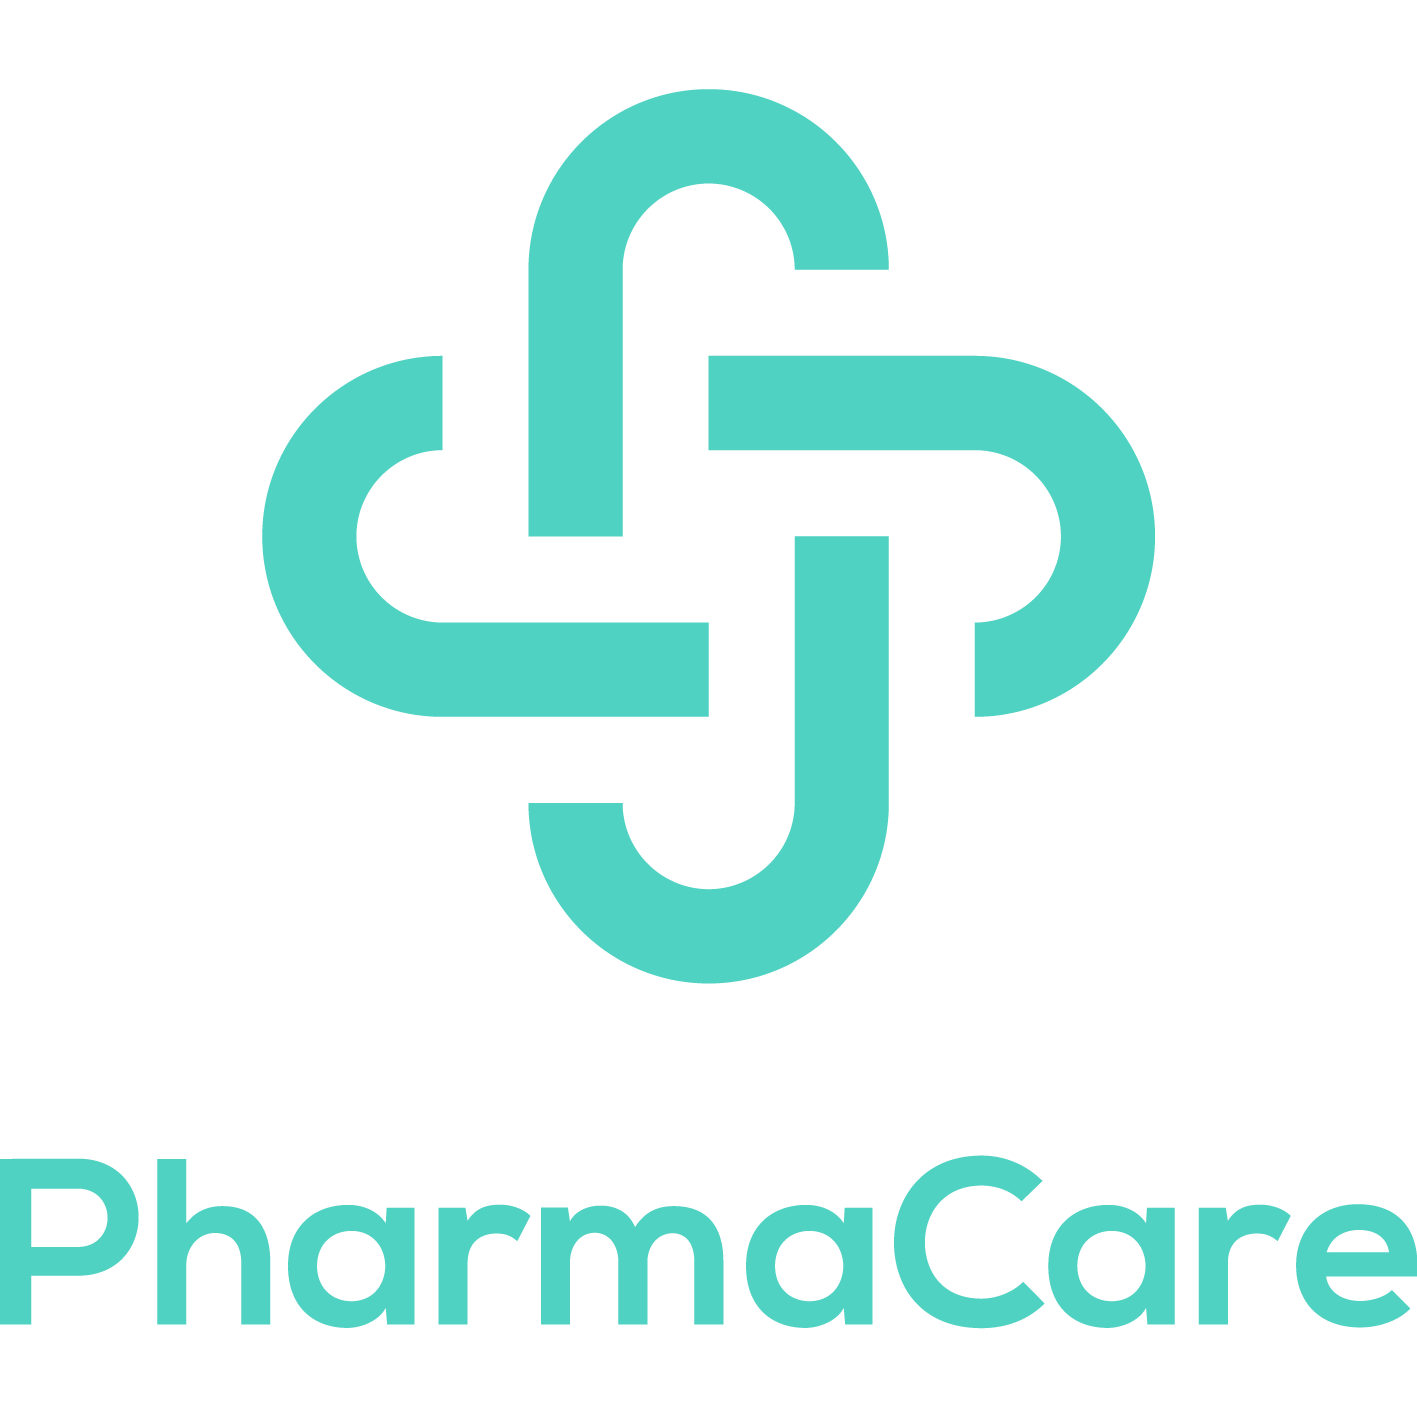 image_startup_PHARMACARE S.R.L